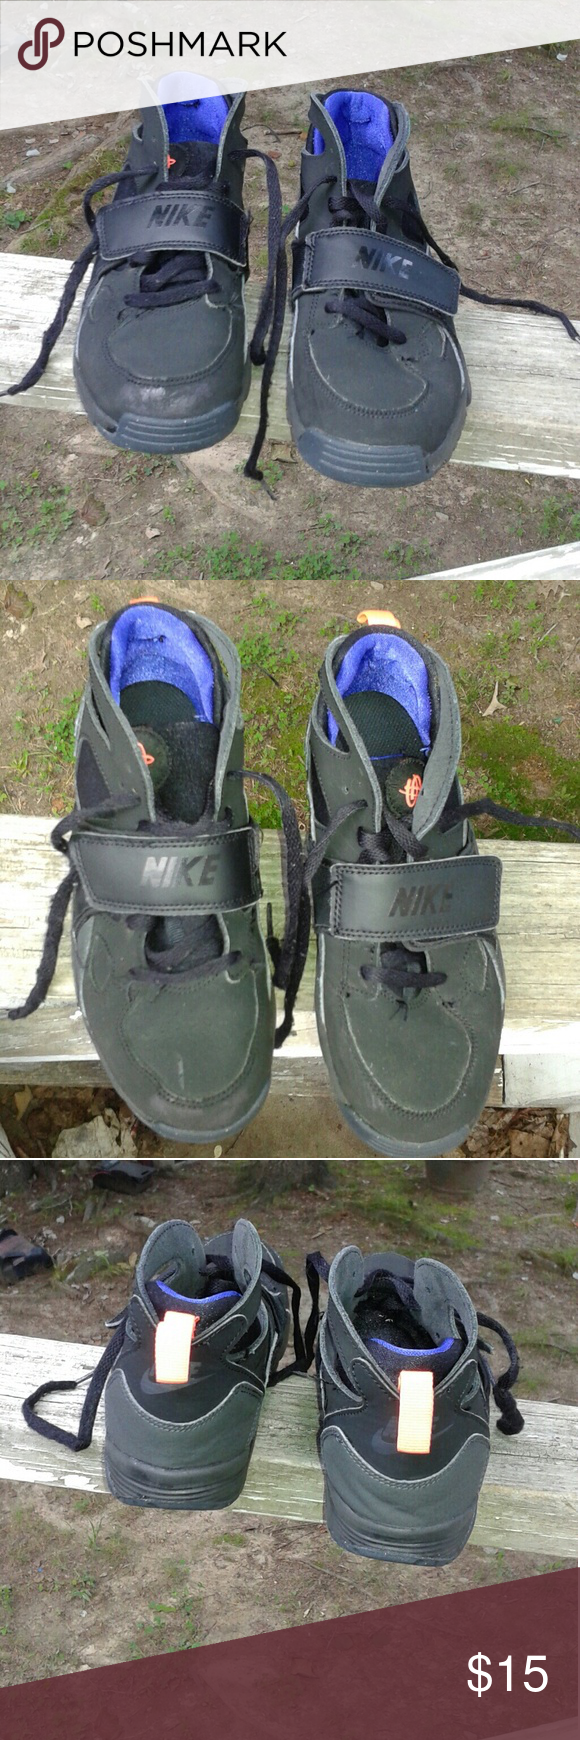 Selling this Nike Huarache Boys Shoes Size 2.5 youth on Poshmark! My  username is: